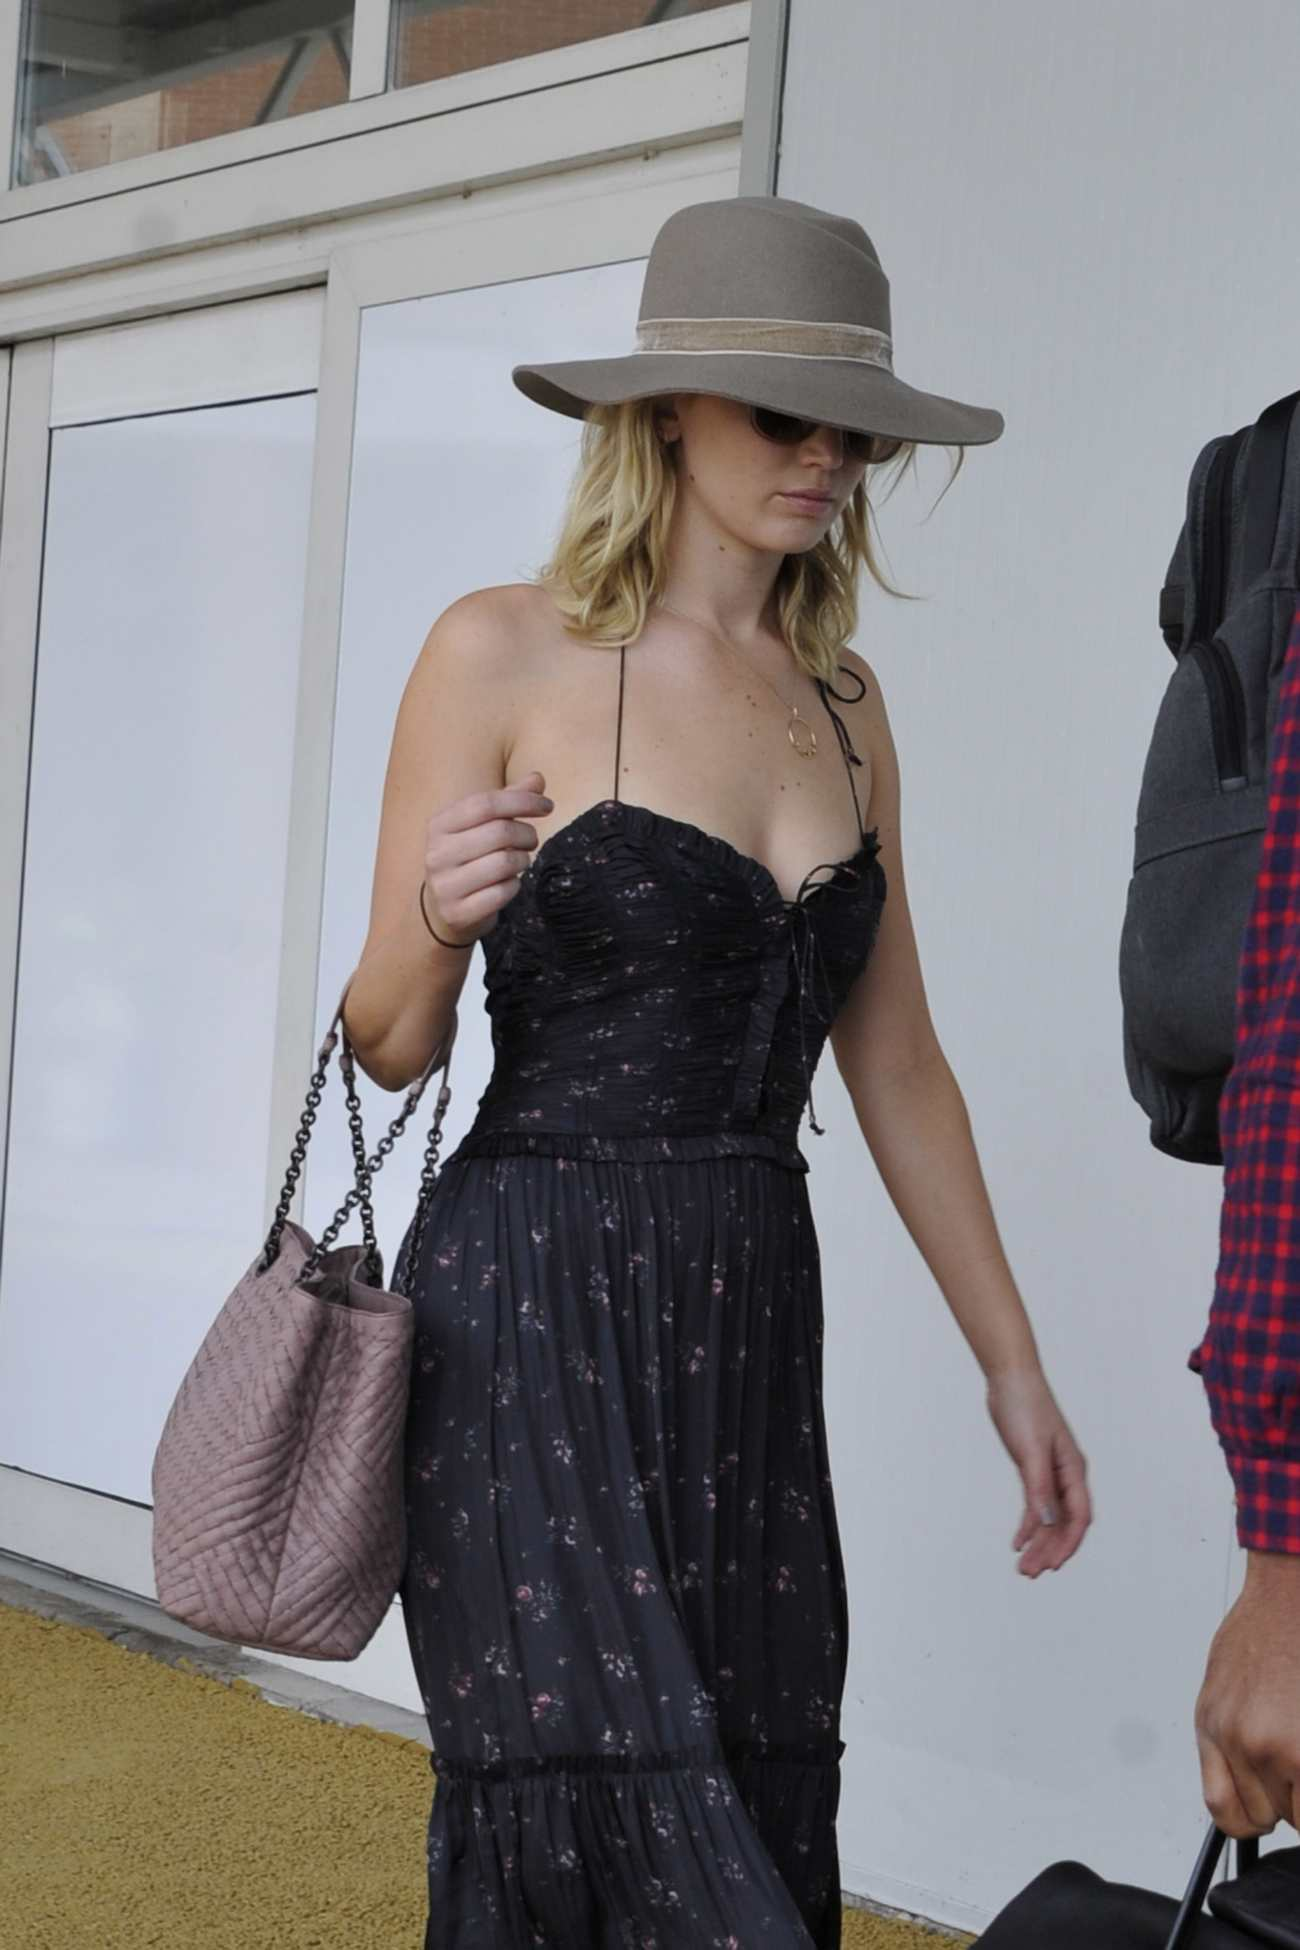 http://jenniferlawrencedaily.com/gallery/albums/userpics/10001/Arrives_at_Venice_Airport_for_the_74th_Venice_Festival_in_Italy_-_September_2-04.jpg